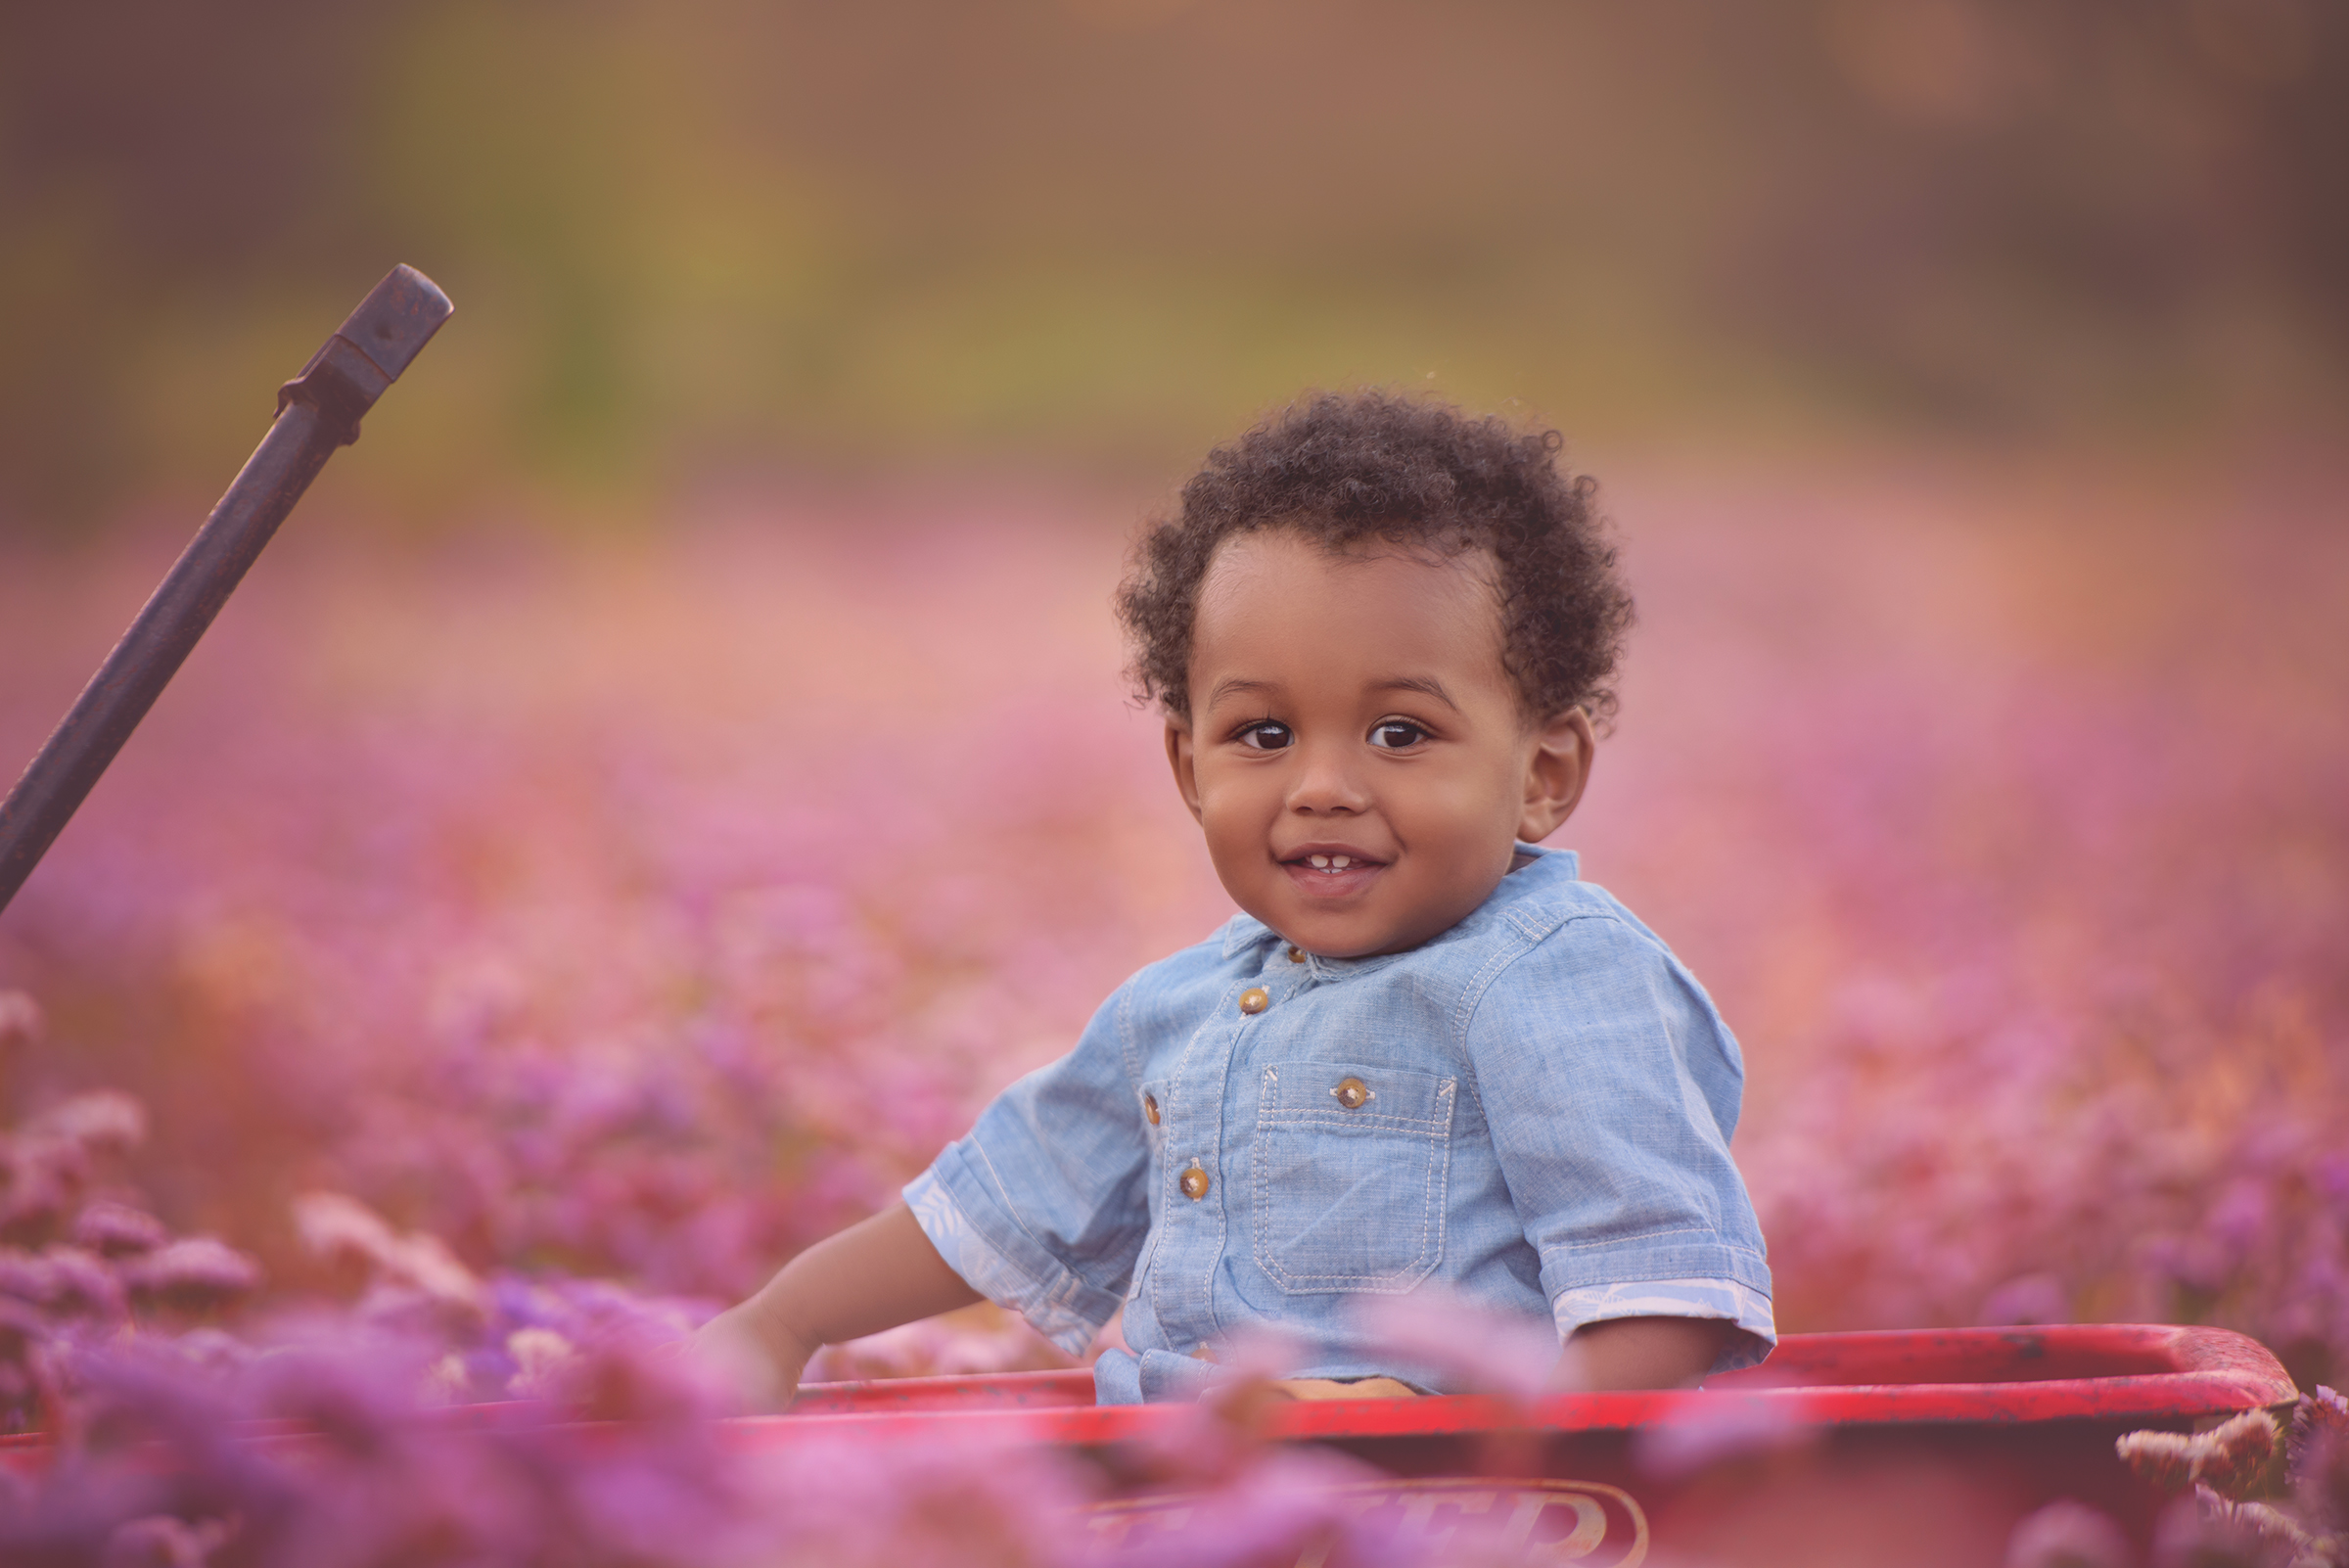 Baby boy 9 months sitting in purple wildflowers in San Diego for baby portrait photography session